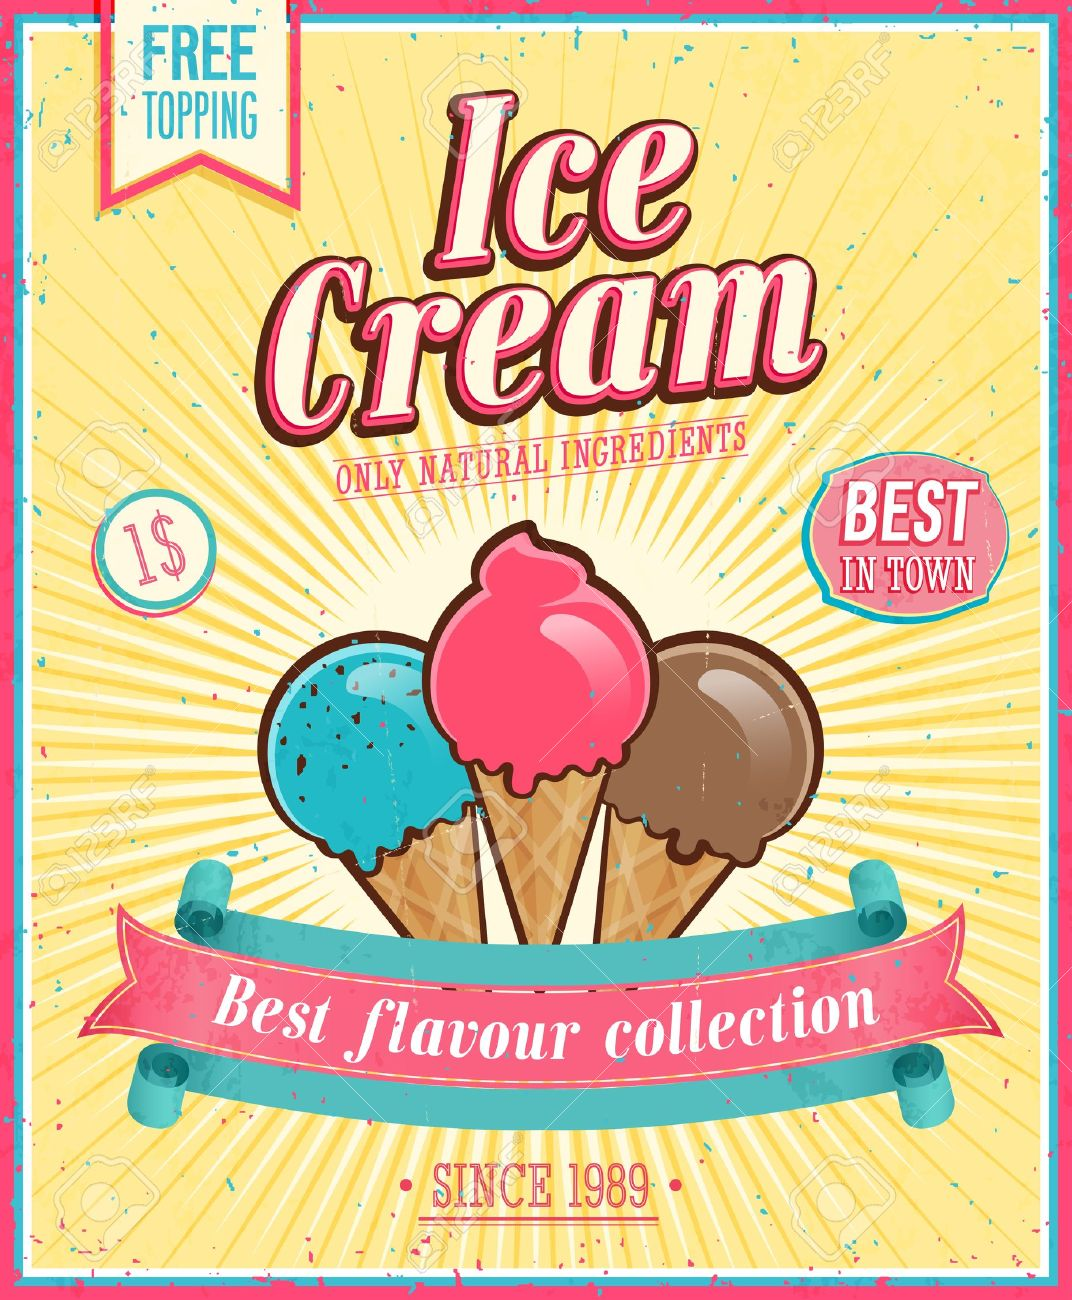 Vintage Ice Cream Poster. Royalty Free Cliparts, Vectors, And ...